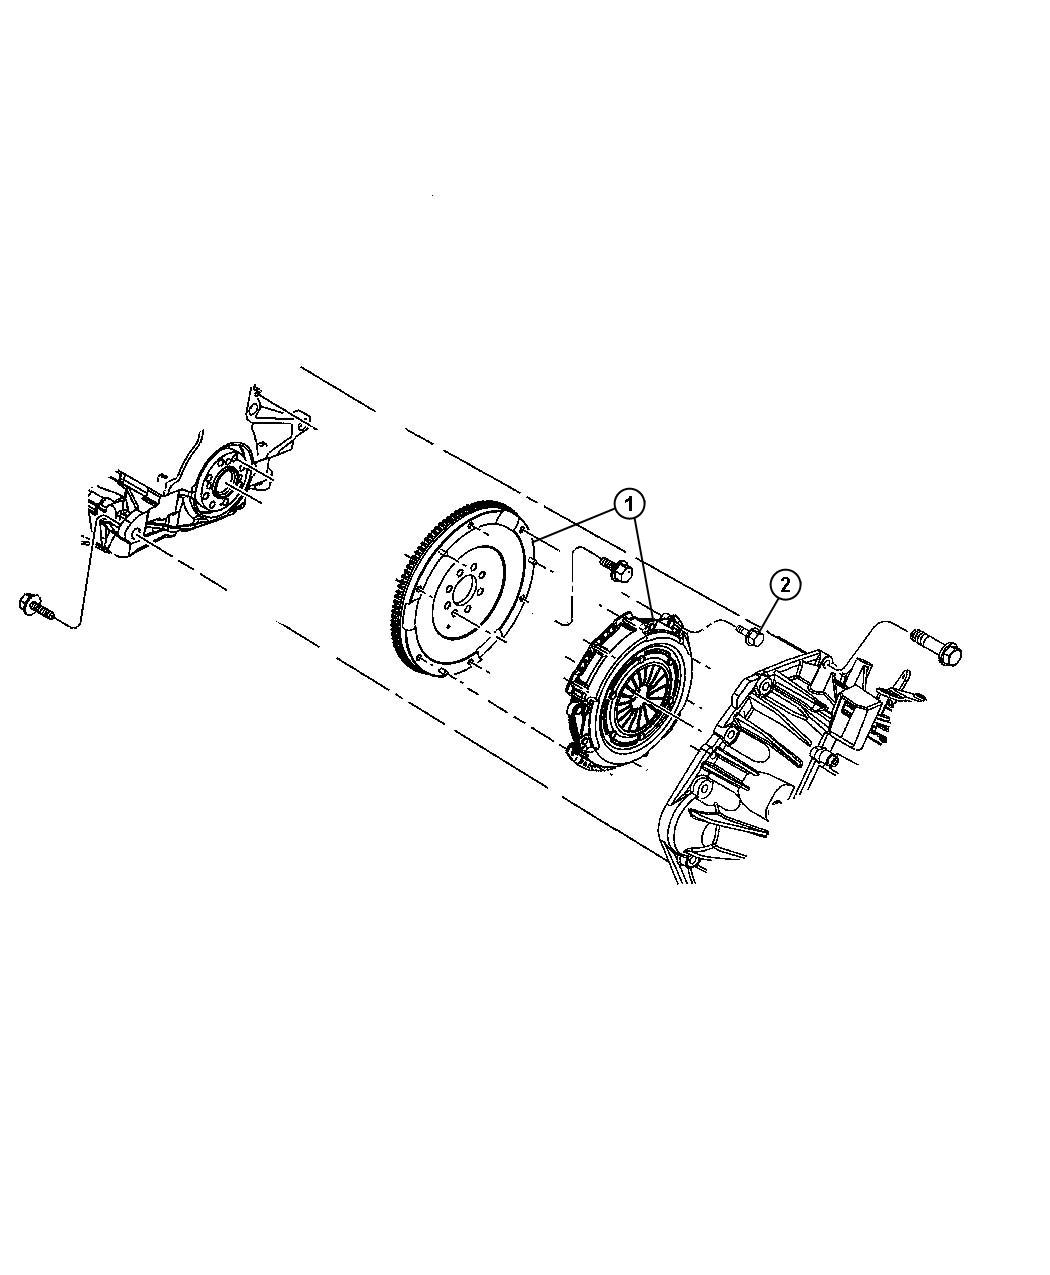 Jeep Patriot Clutch Kit Used For Pressure Plate And